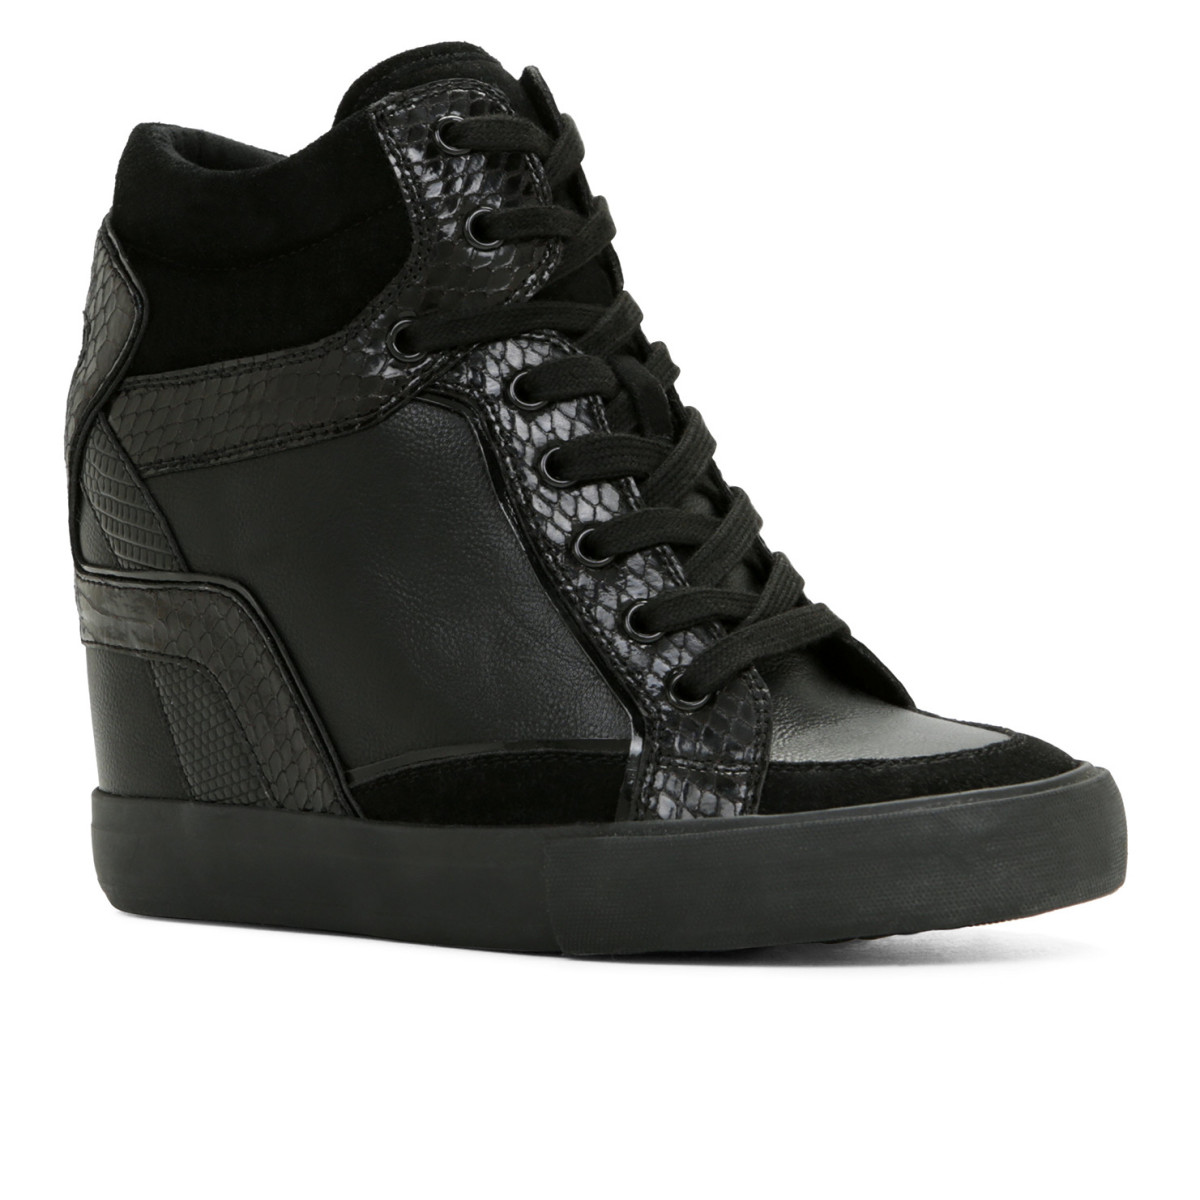 Aldo gift card giveaway_Bertilla wedge sneaker in black